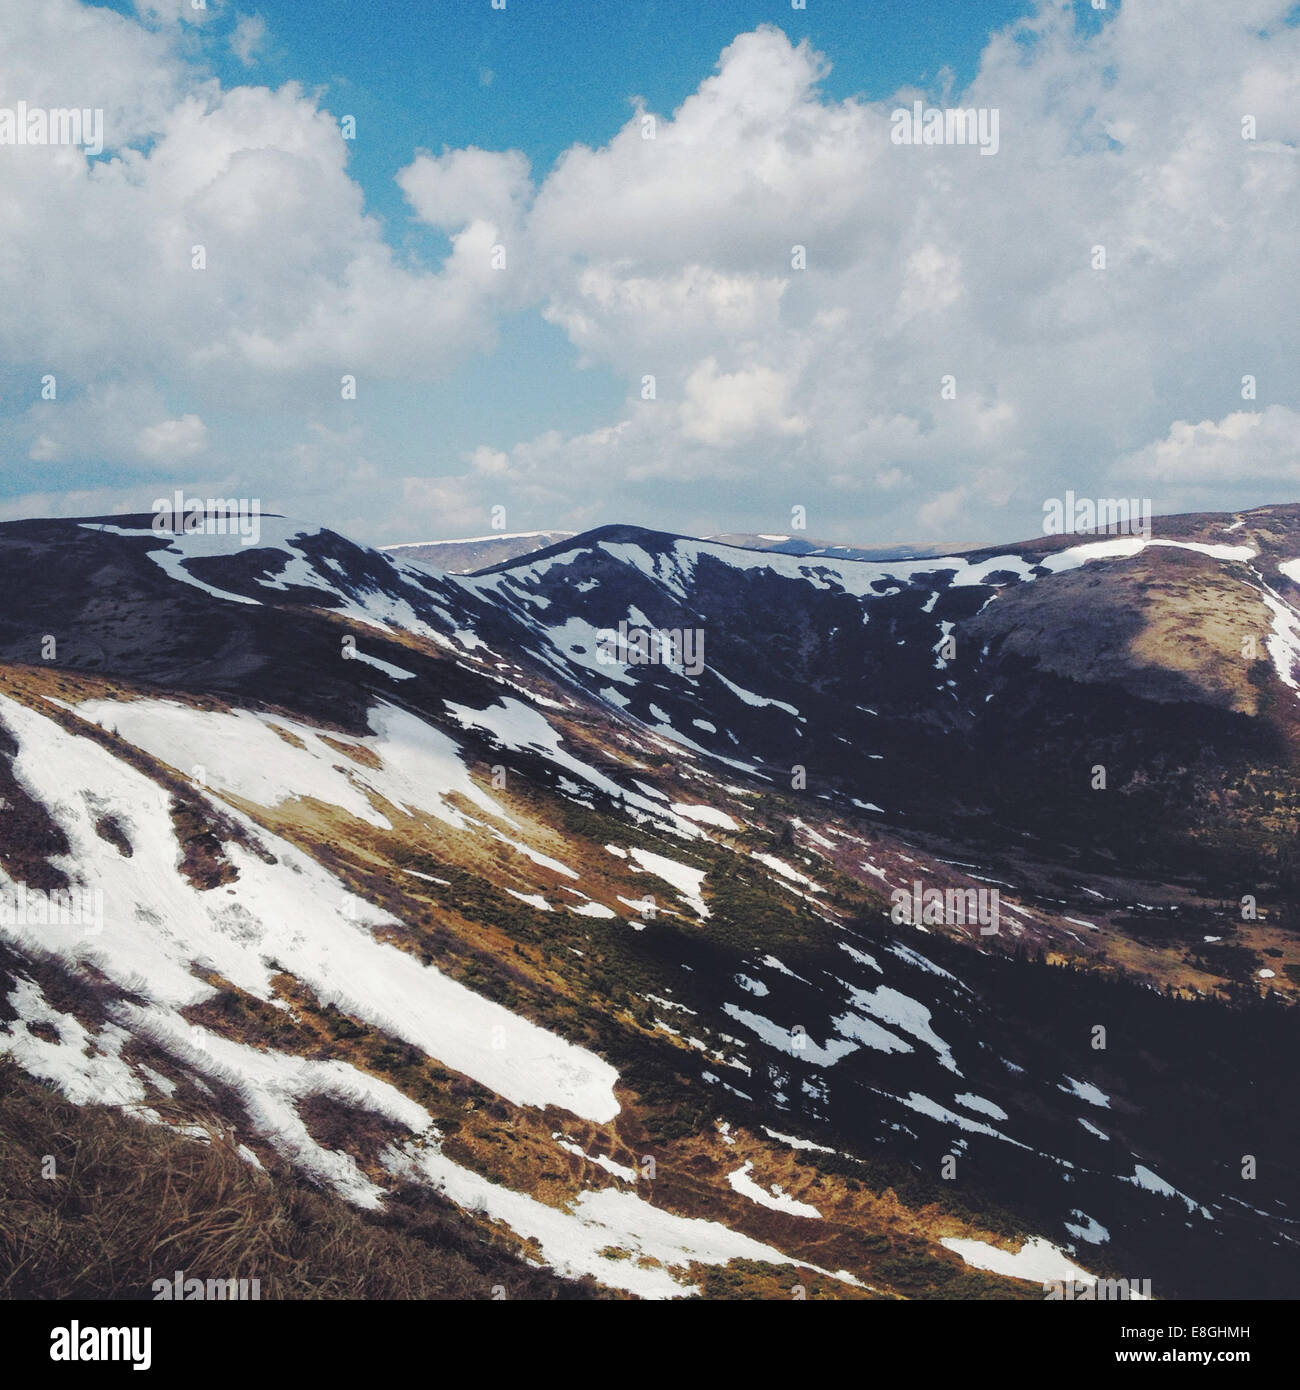 Mountains in snow - Stock Image